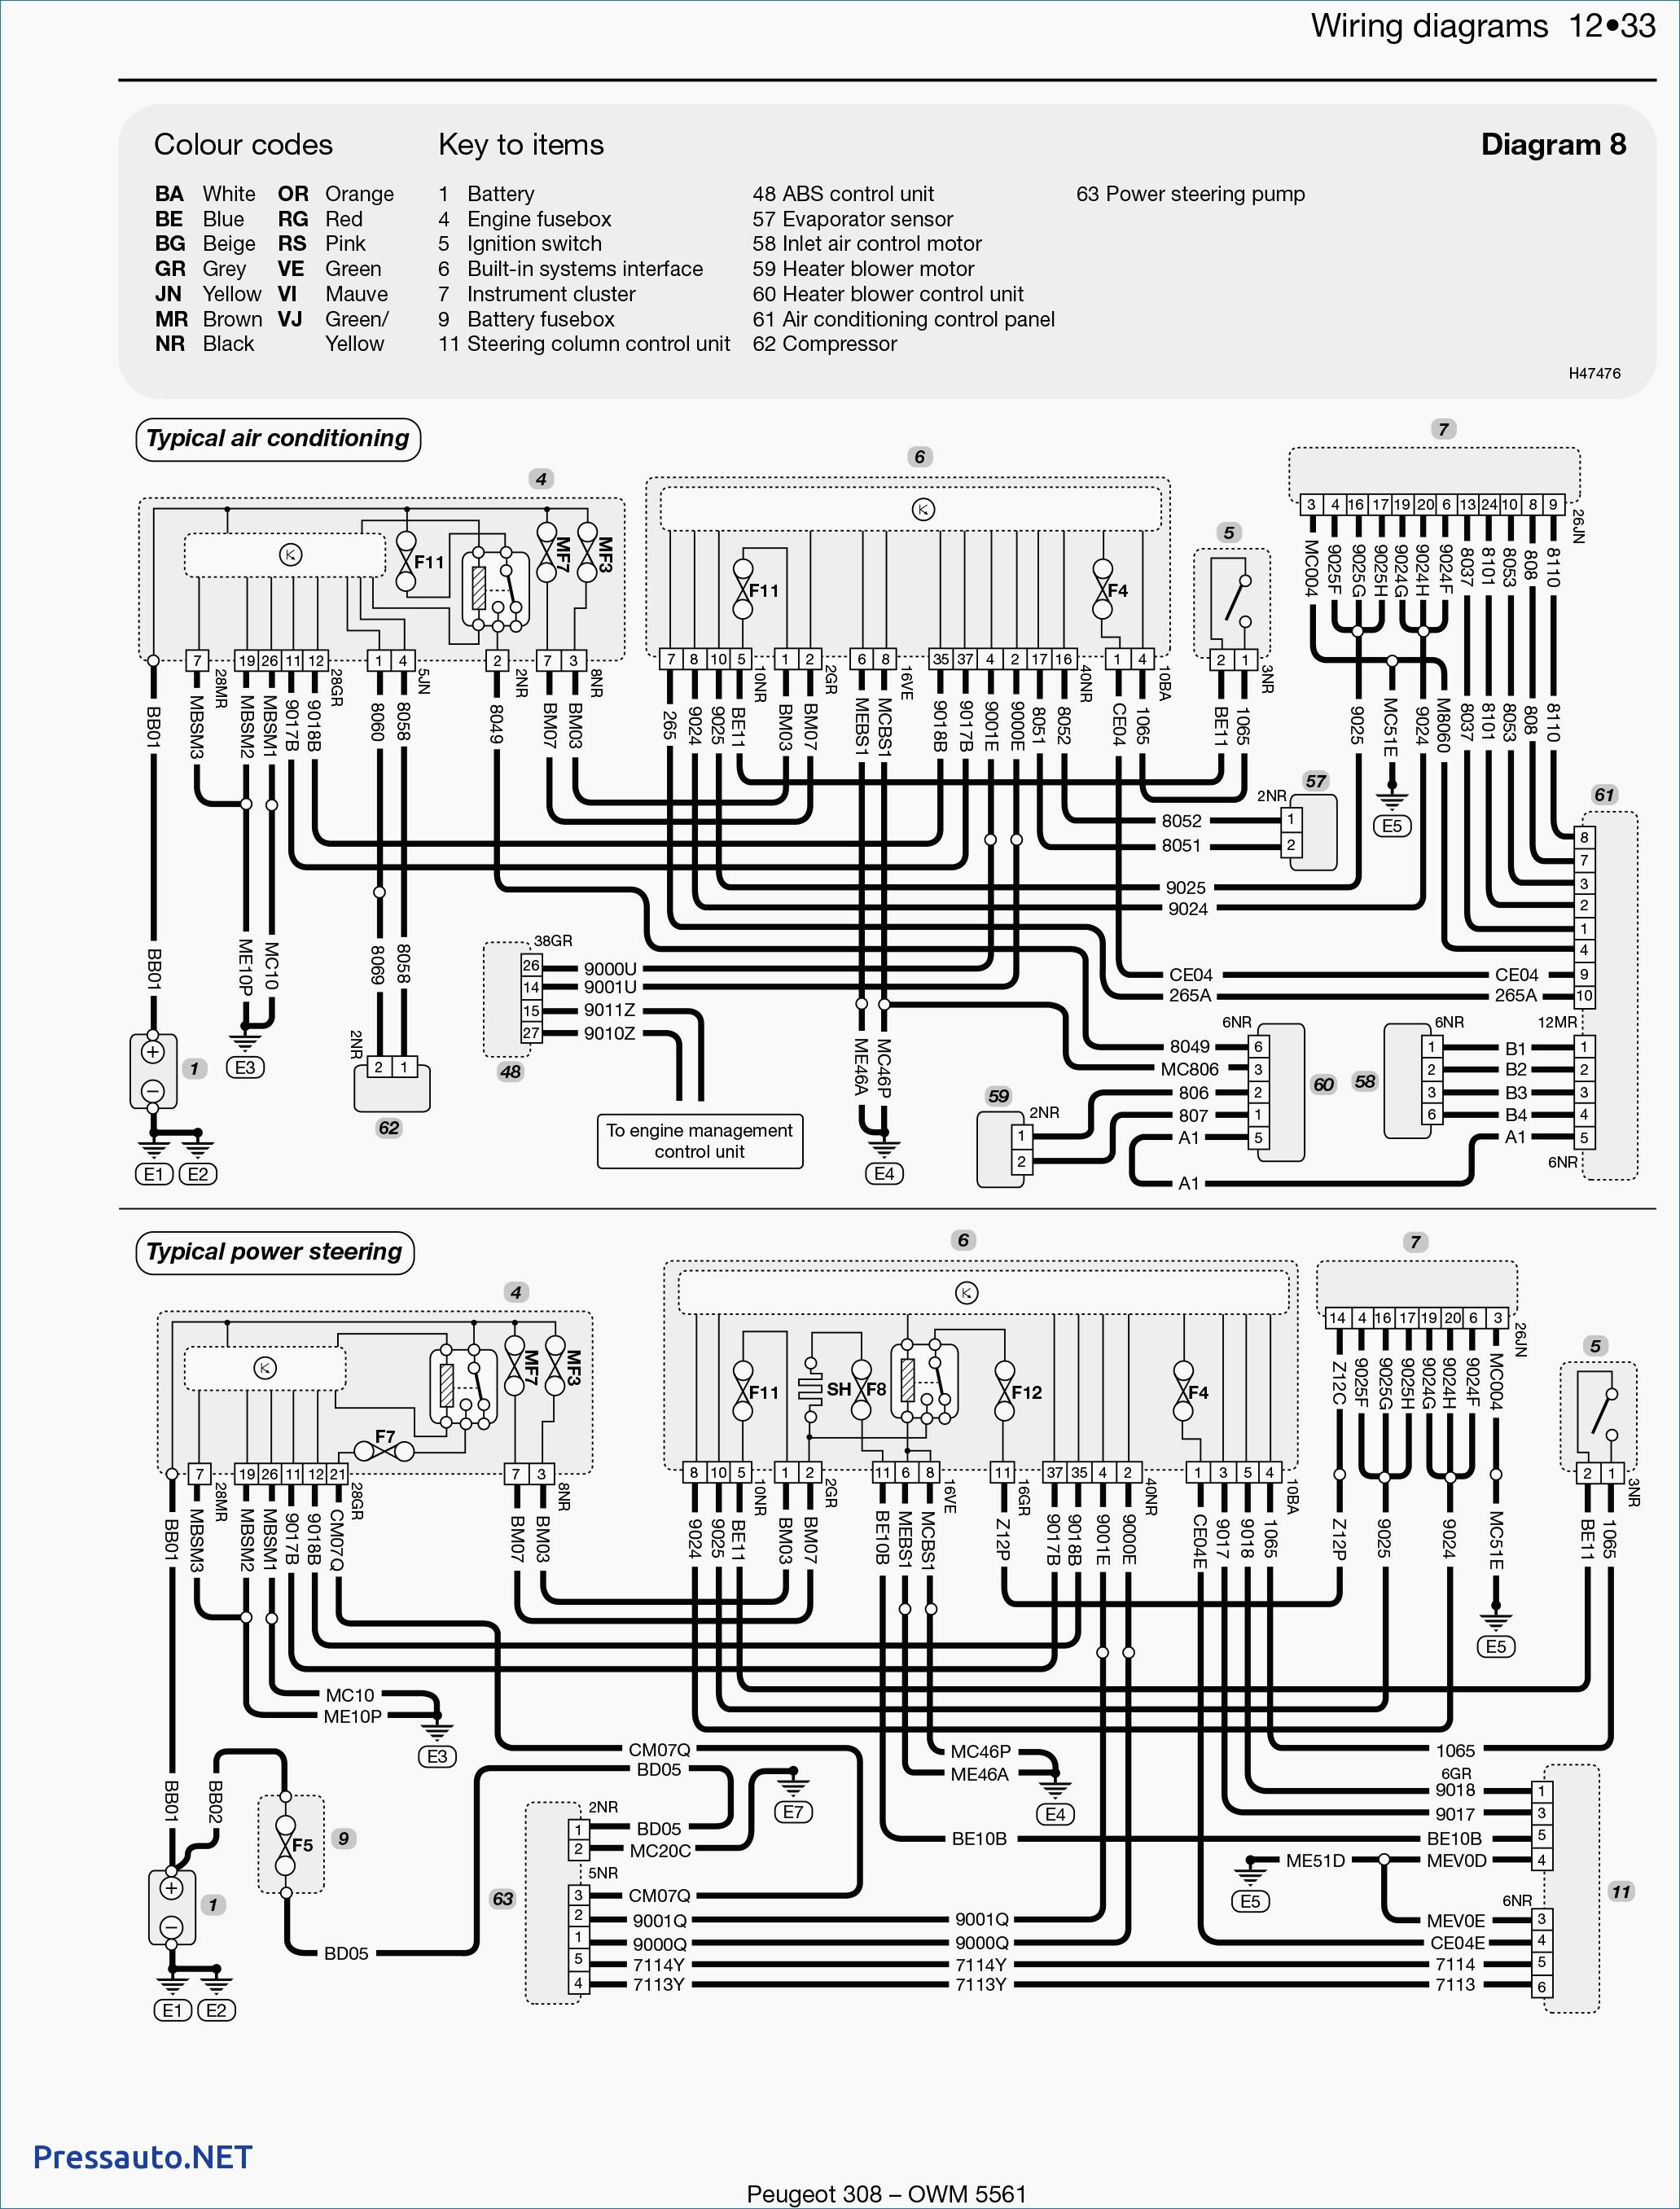 Peugeot Engine Diagram Diy Wiring Diagrams \u2022 Peugeot 305 Peugeot 406  Fuse Box Layout Hdi